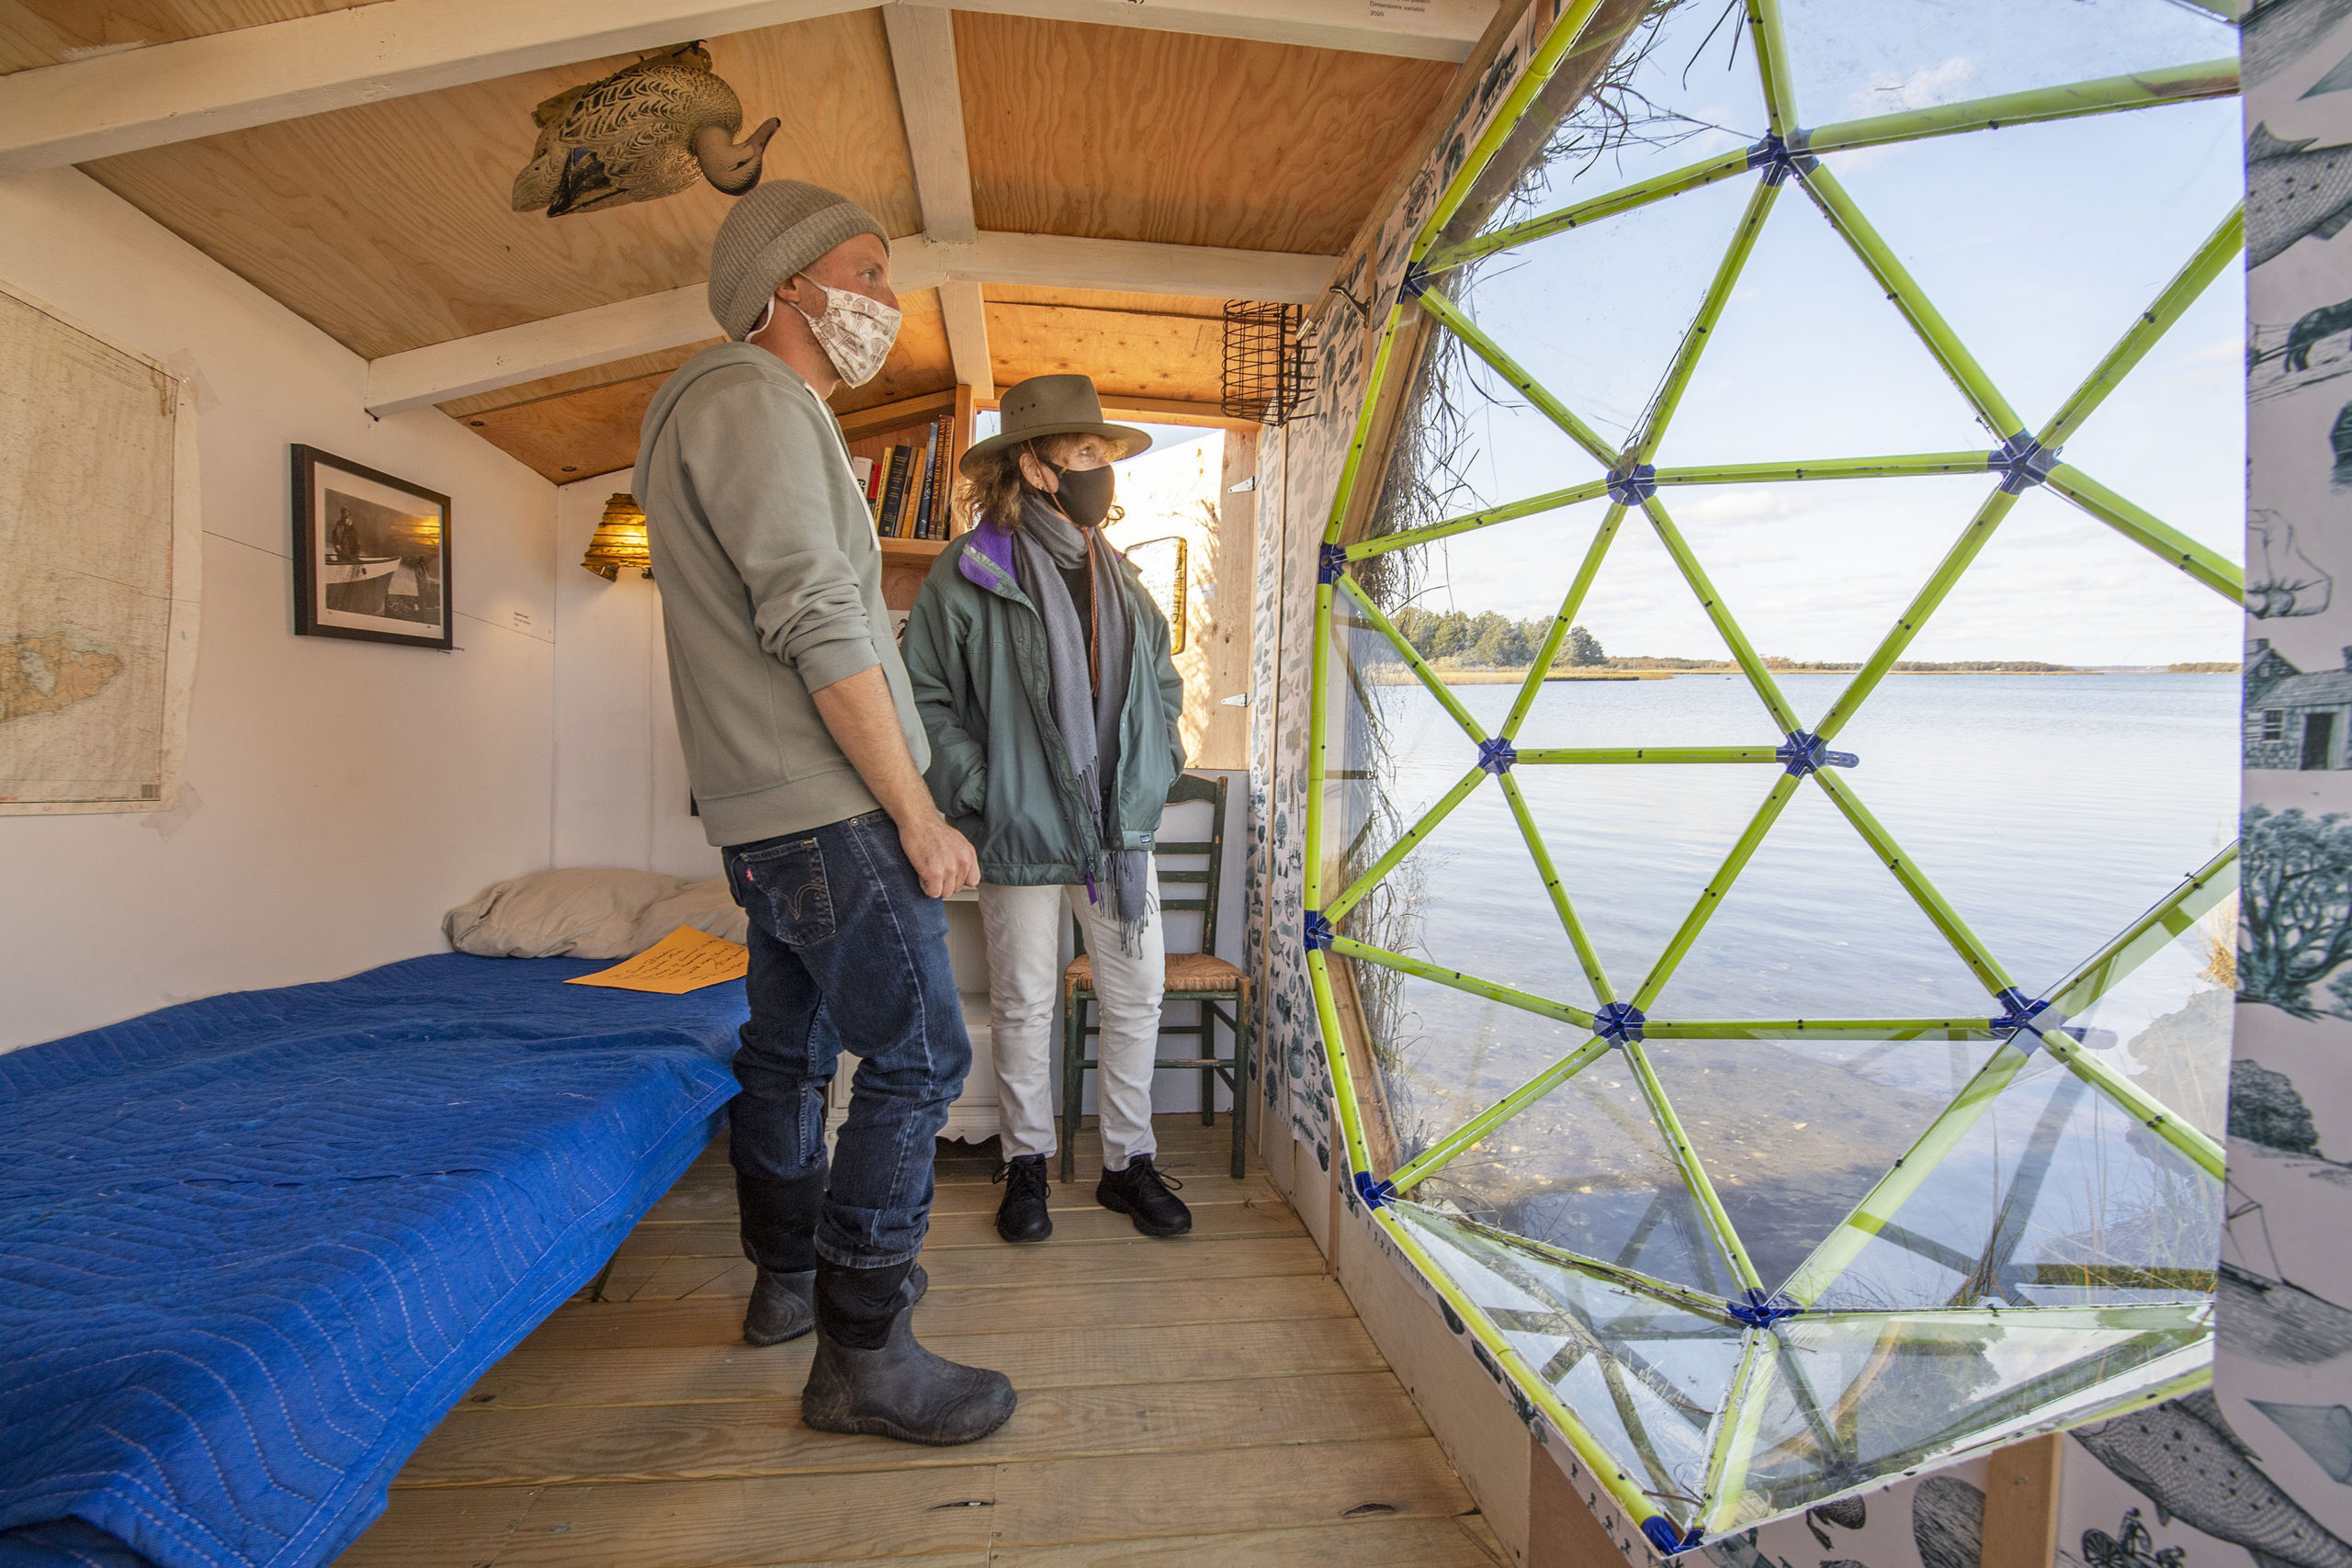 Artist Scott Bluedorn and visitor Jacqueline Marks check out the view from inside his